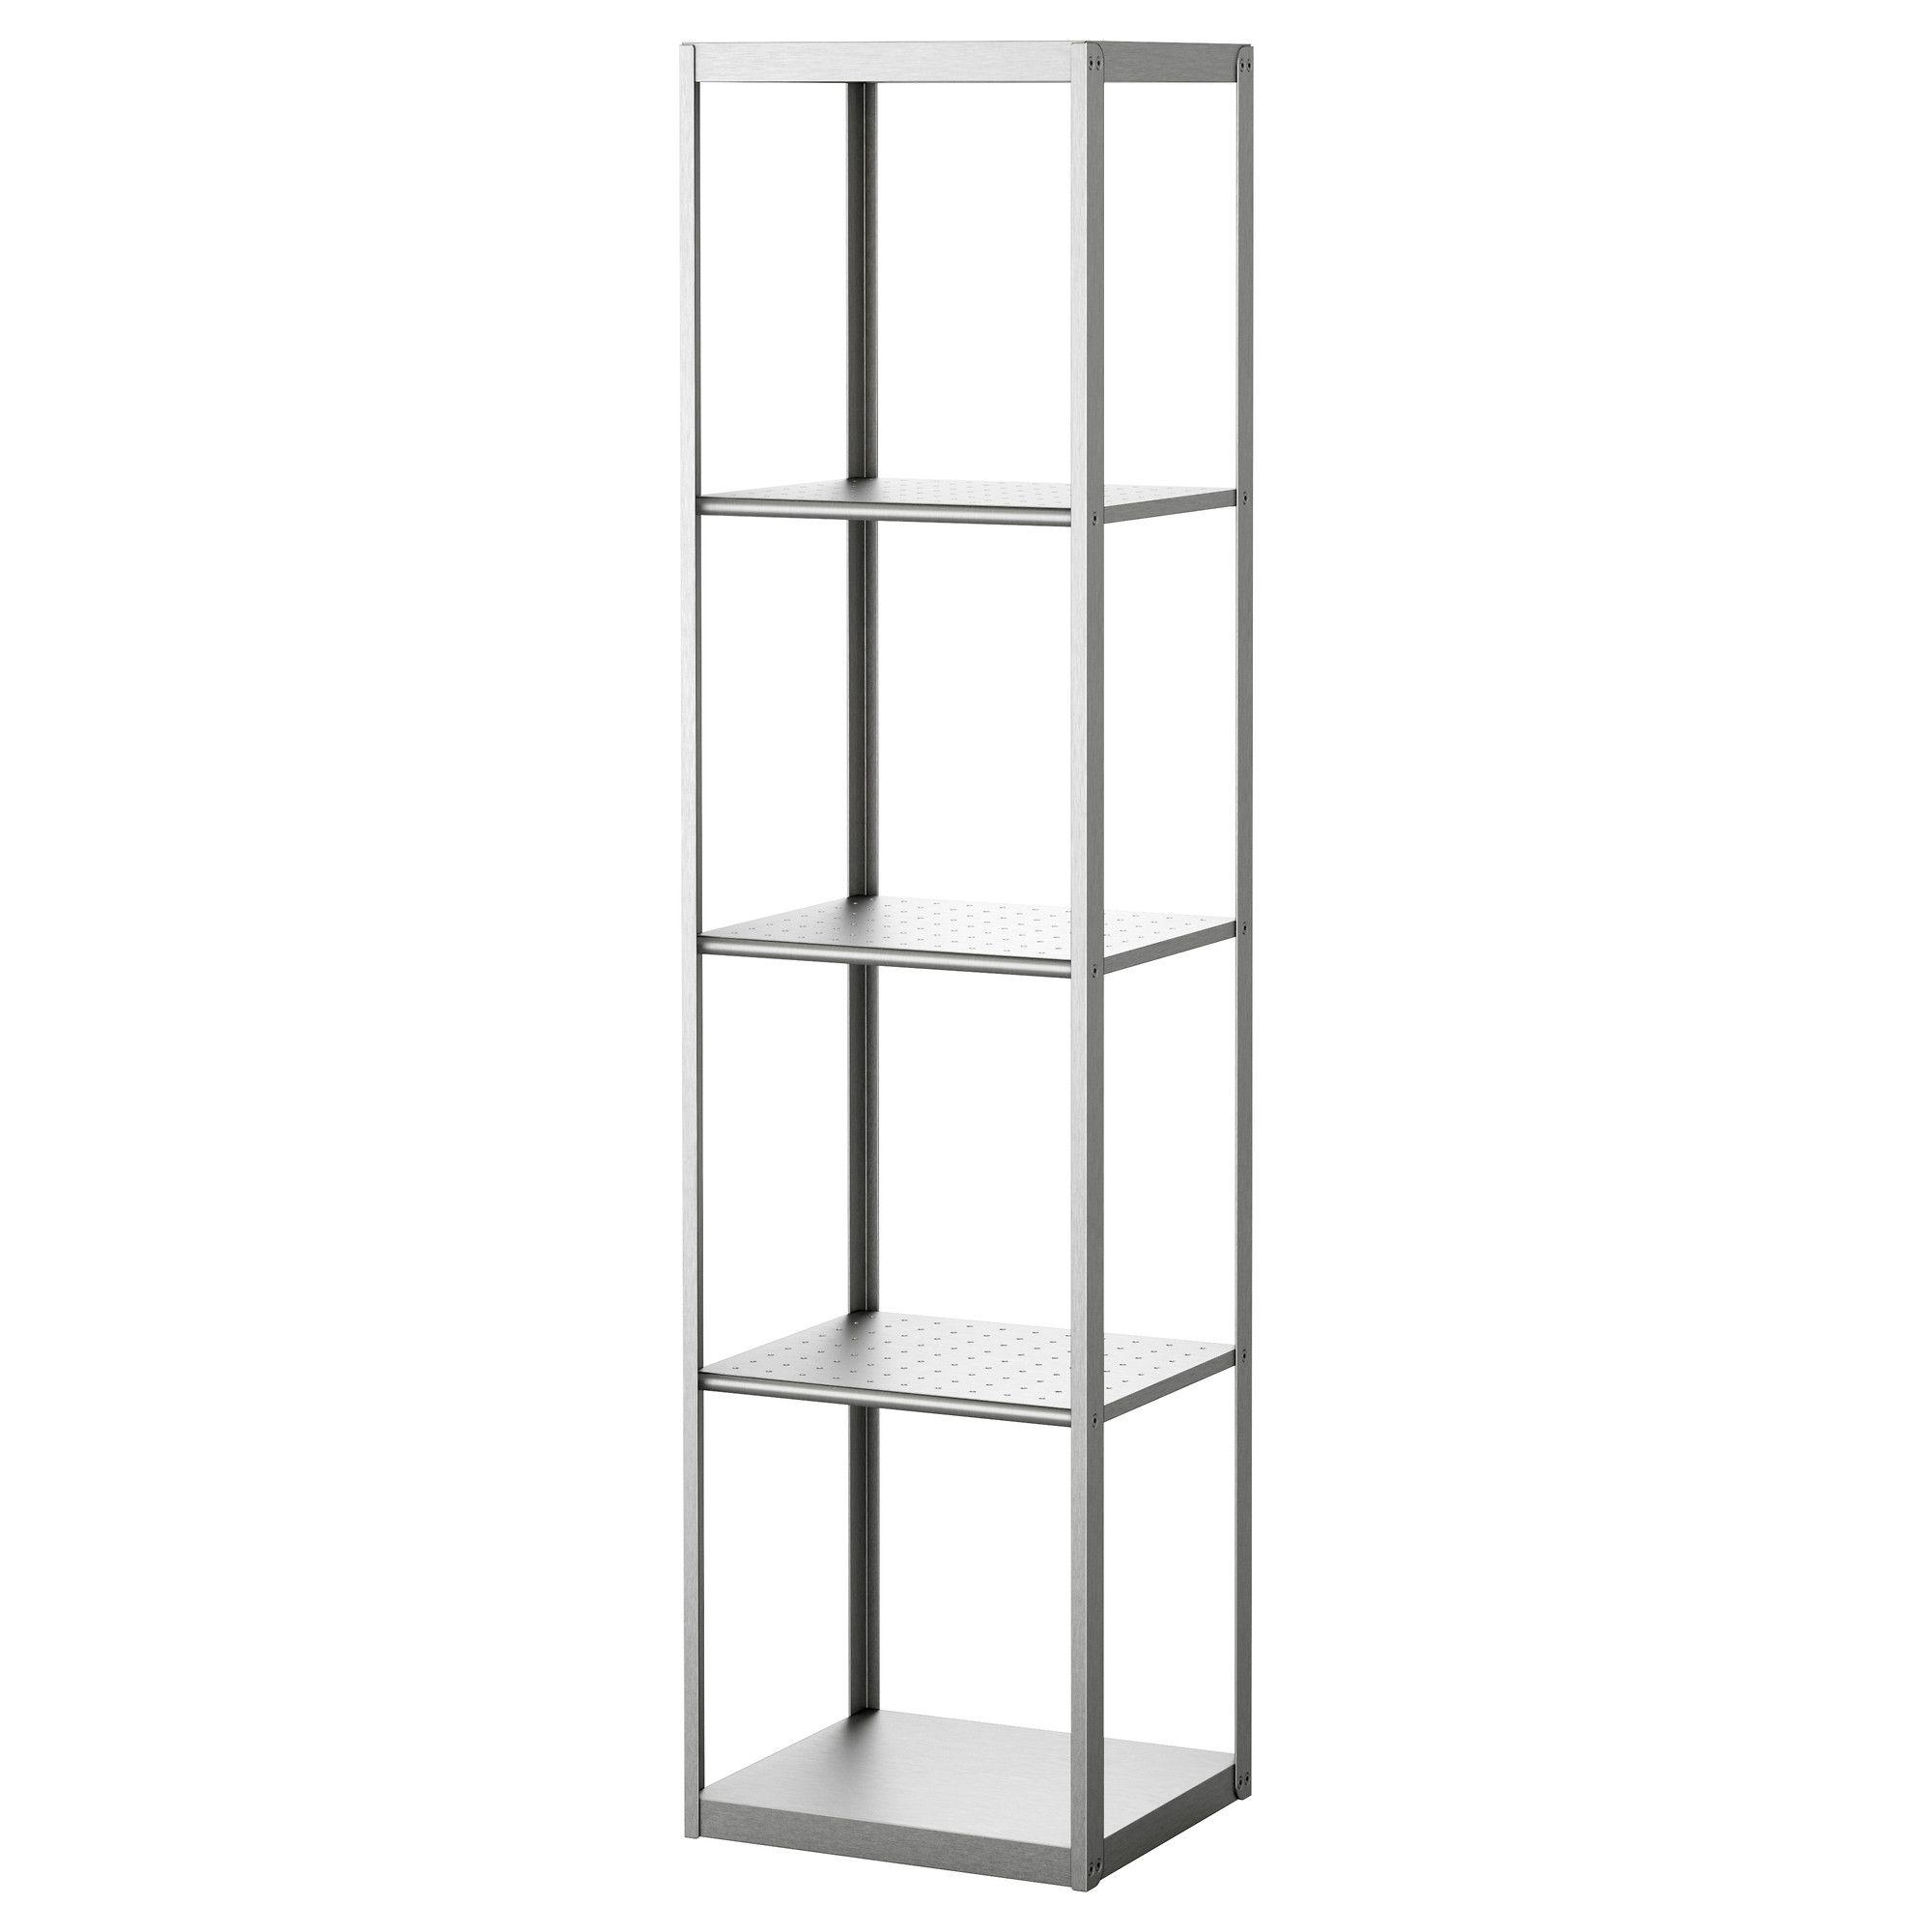 Ikea Glasregal Grundtal Grundtal Shelf Unit Ikea Bathroom Storage Sv Bathroom